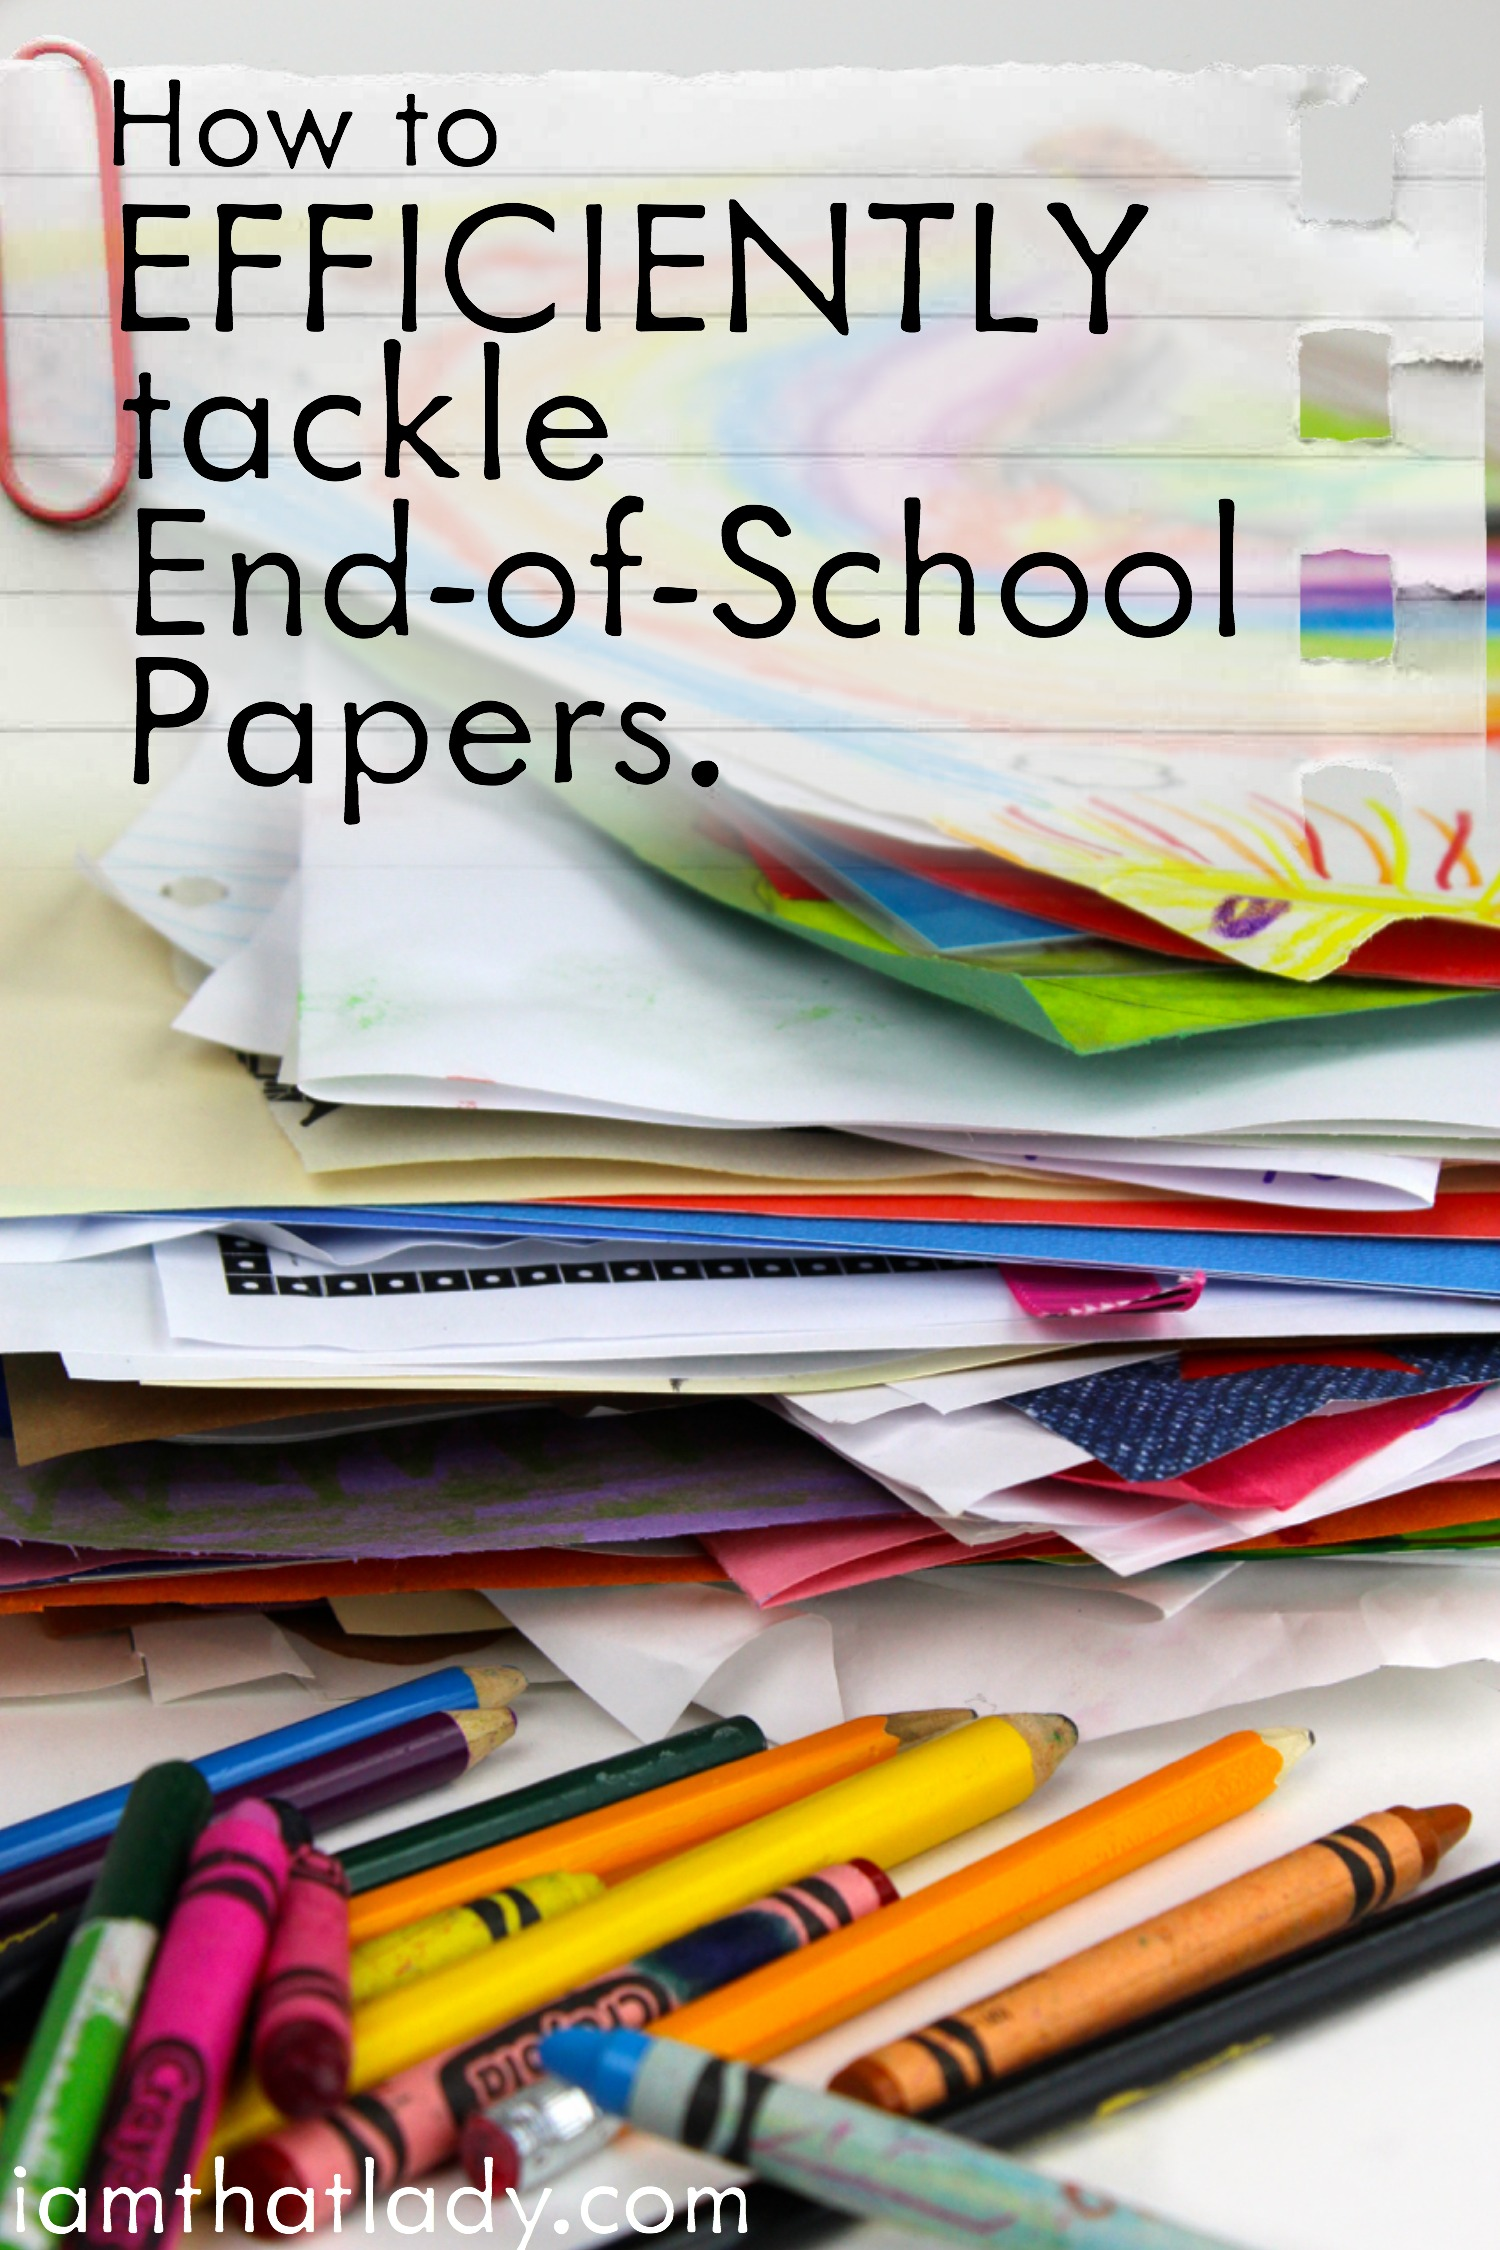 Overwhelmed at the piles and piles of school papers your kids bring home at the end of the year? This guide will show you how to easily organize them and get a head start on the next school year!